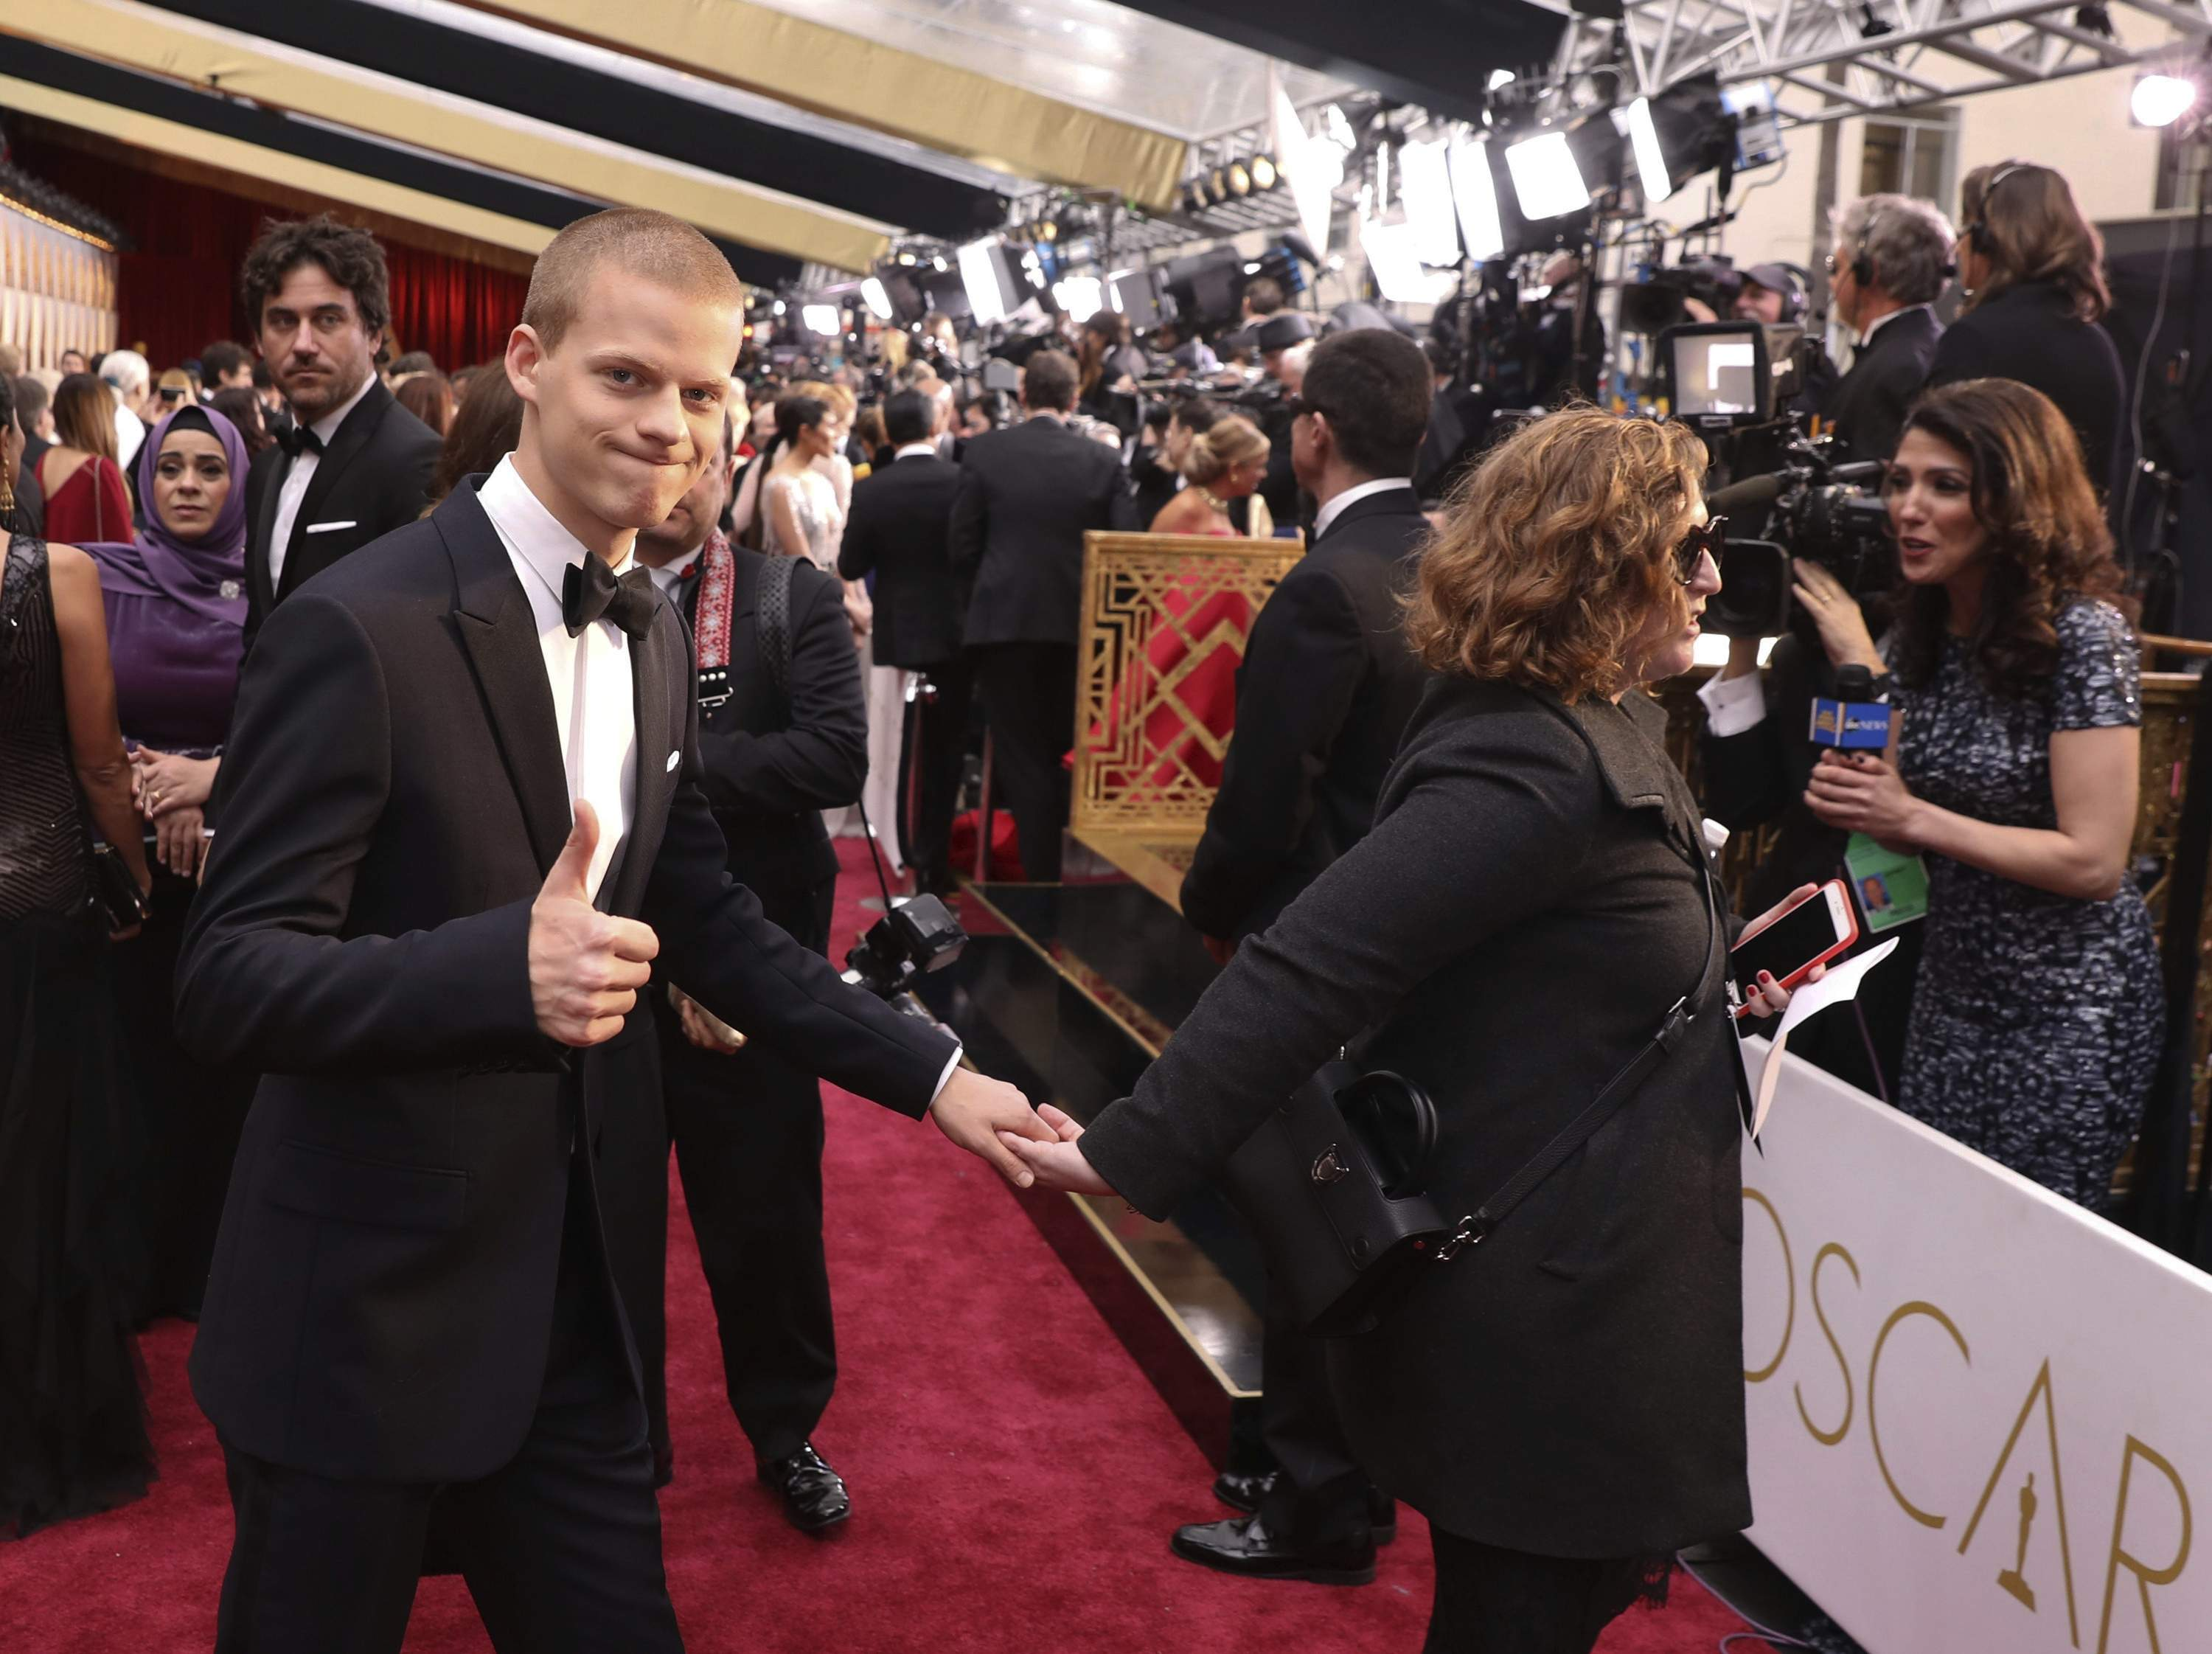 Lucas Hedges arrives at the Oscars on Sunday, Feb. 26, 2017, at the Dolby Theatre in Los Angeles. THE ASSOCIATED PRESS